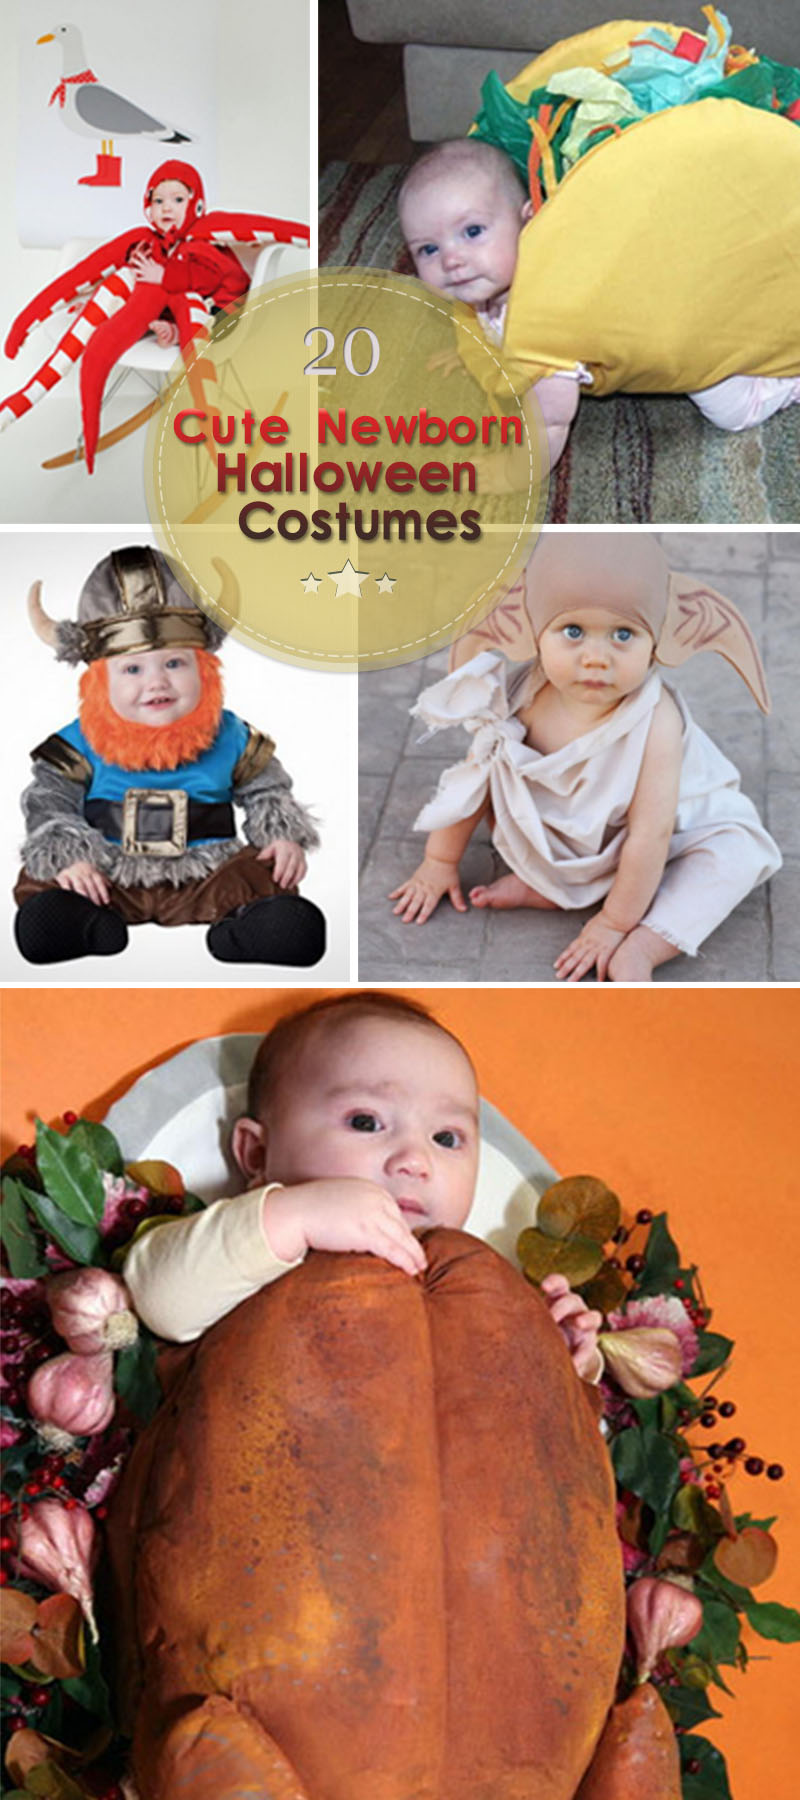 Cute Newborn Halloween Costumes for the little ones in your life!